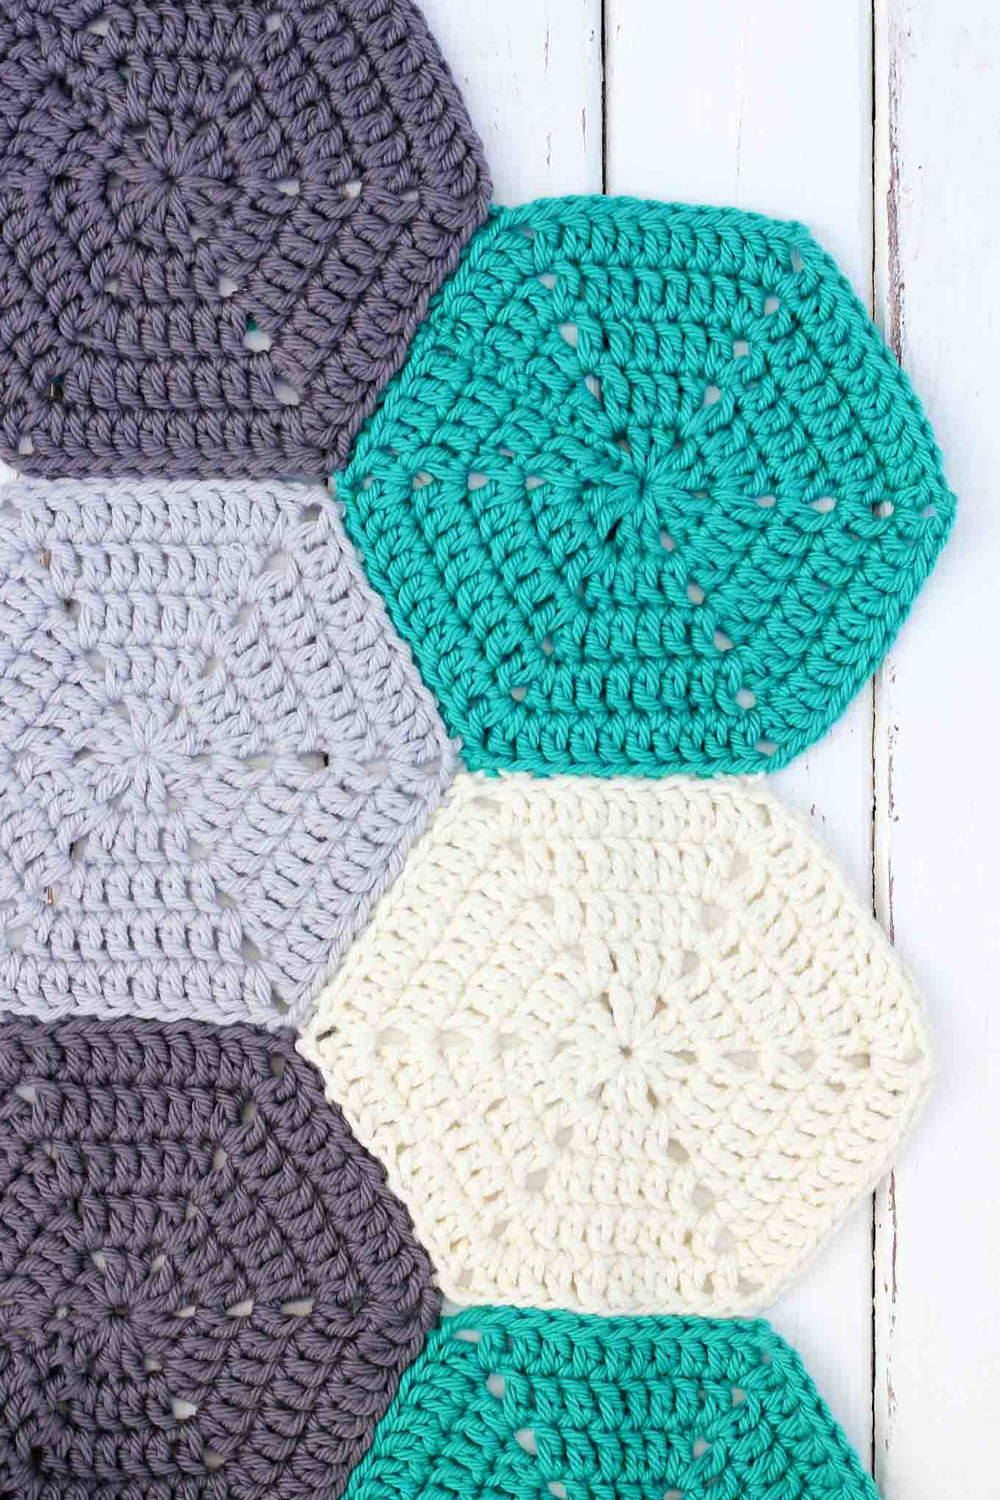 How To Join Crochet Hexagons With Invisible Seams Allfreecrochet